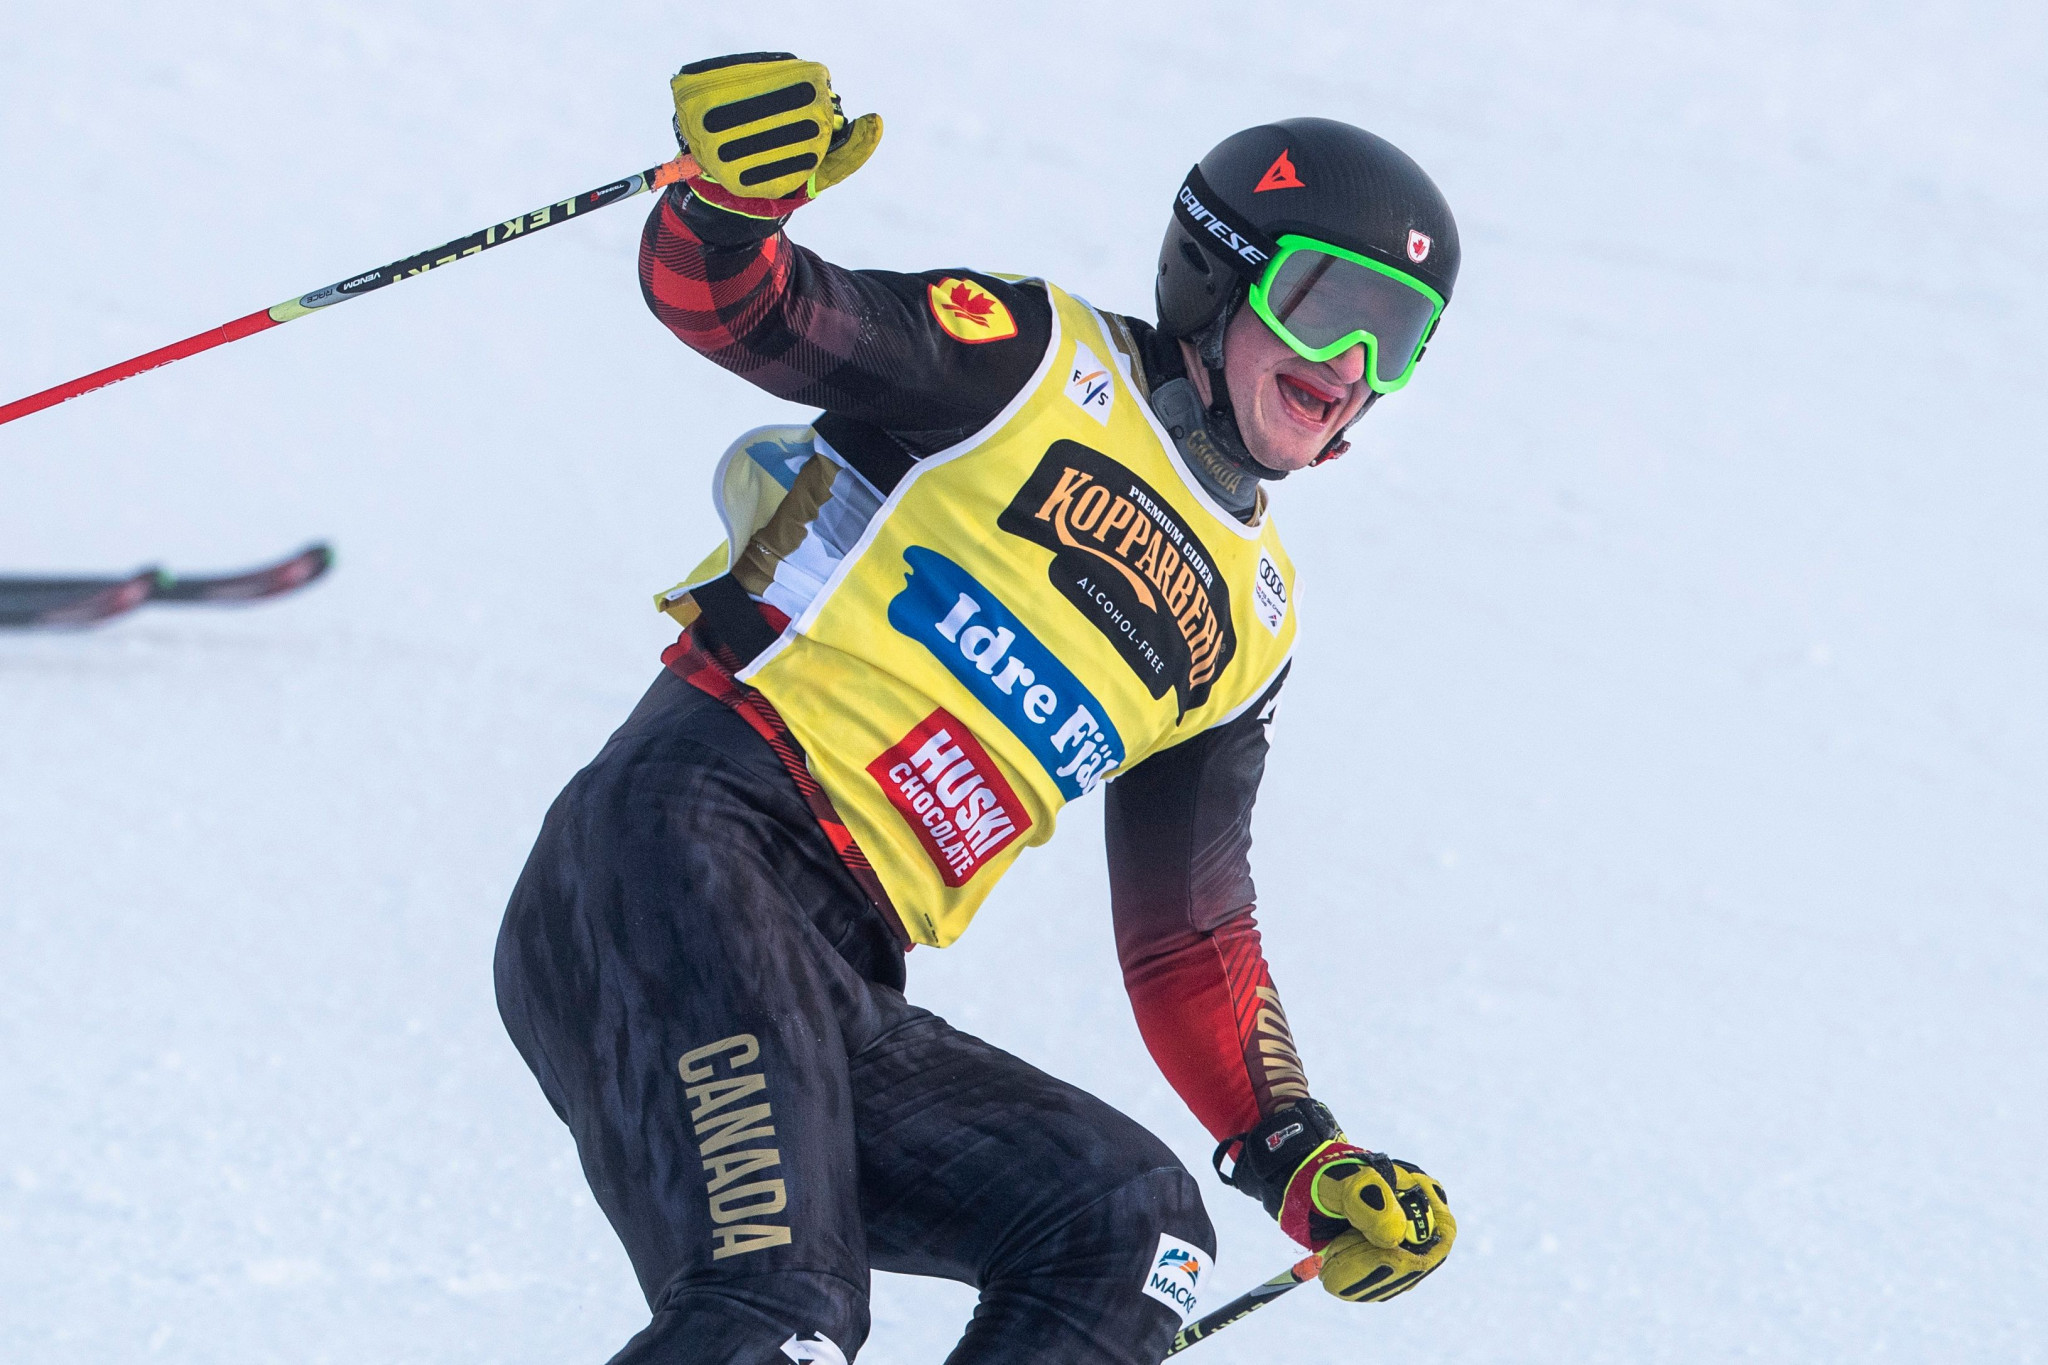 Newly-crowned Ski Cross World Cup champions Howden and Smith victorious in Russia